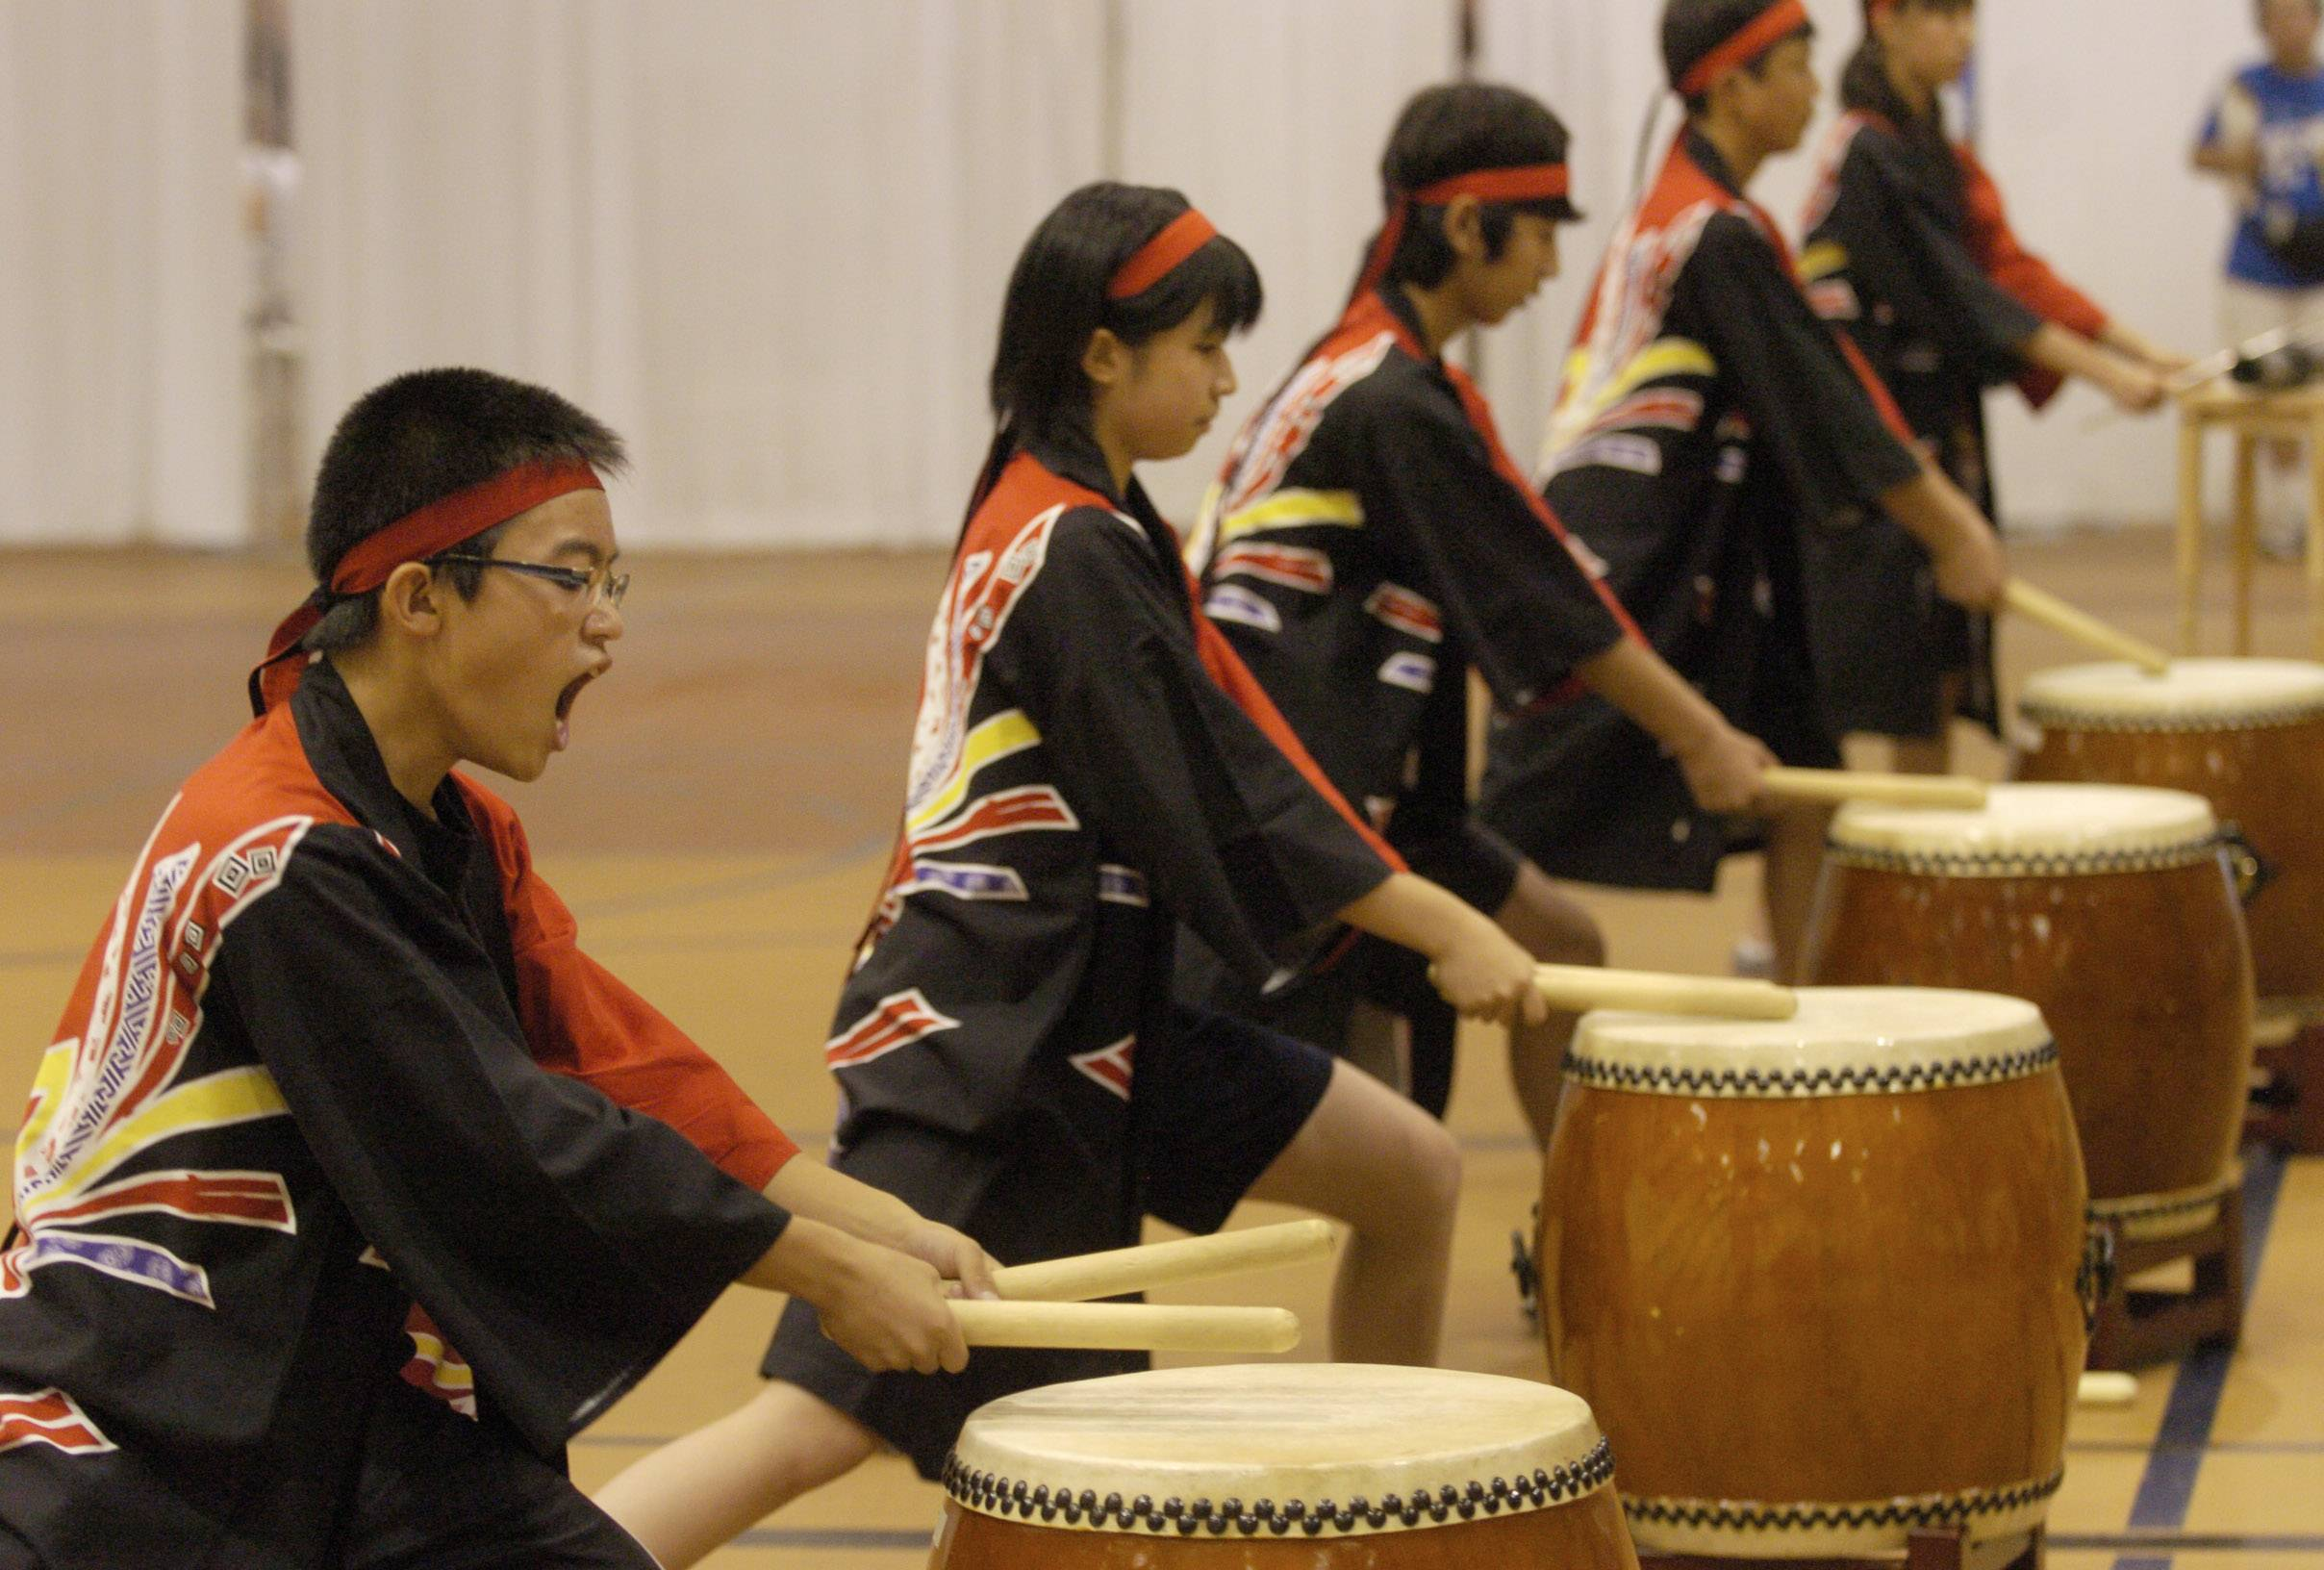 JOE LEWNARD/jlewnard@dailyherald.com Yuki Kunishina of Hoffman Estates performs on the Taiko Japanese drum during the 2010 Japan Festival at the Forest View Educational Center.